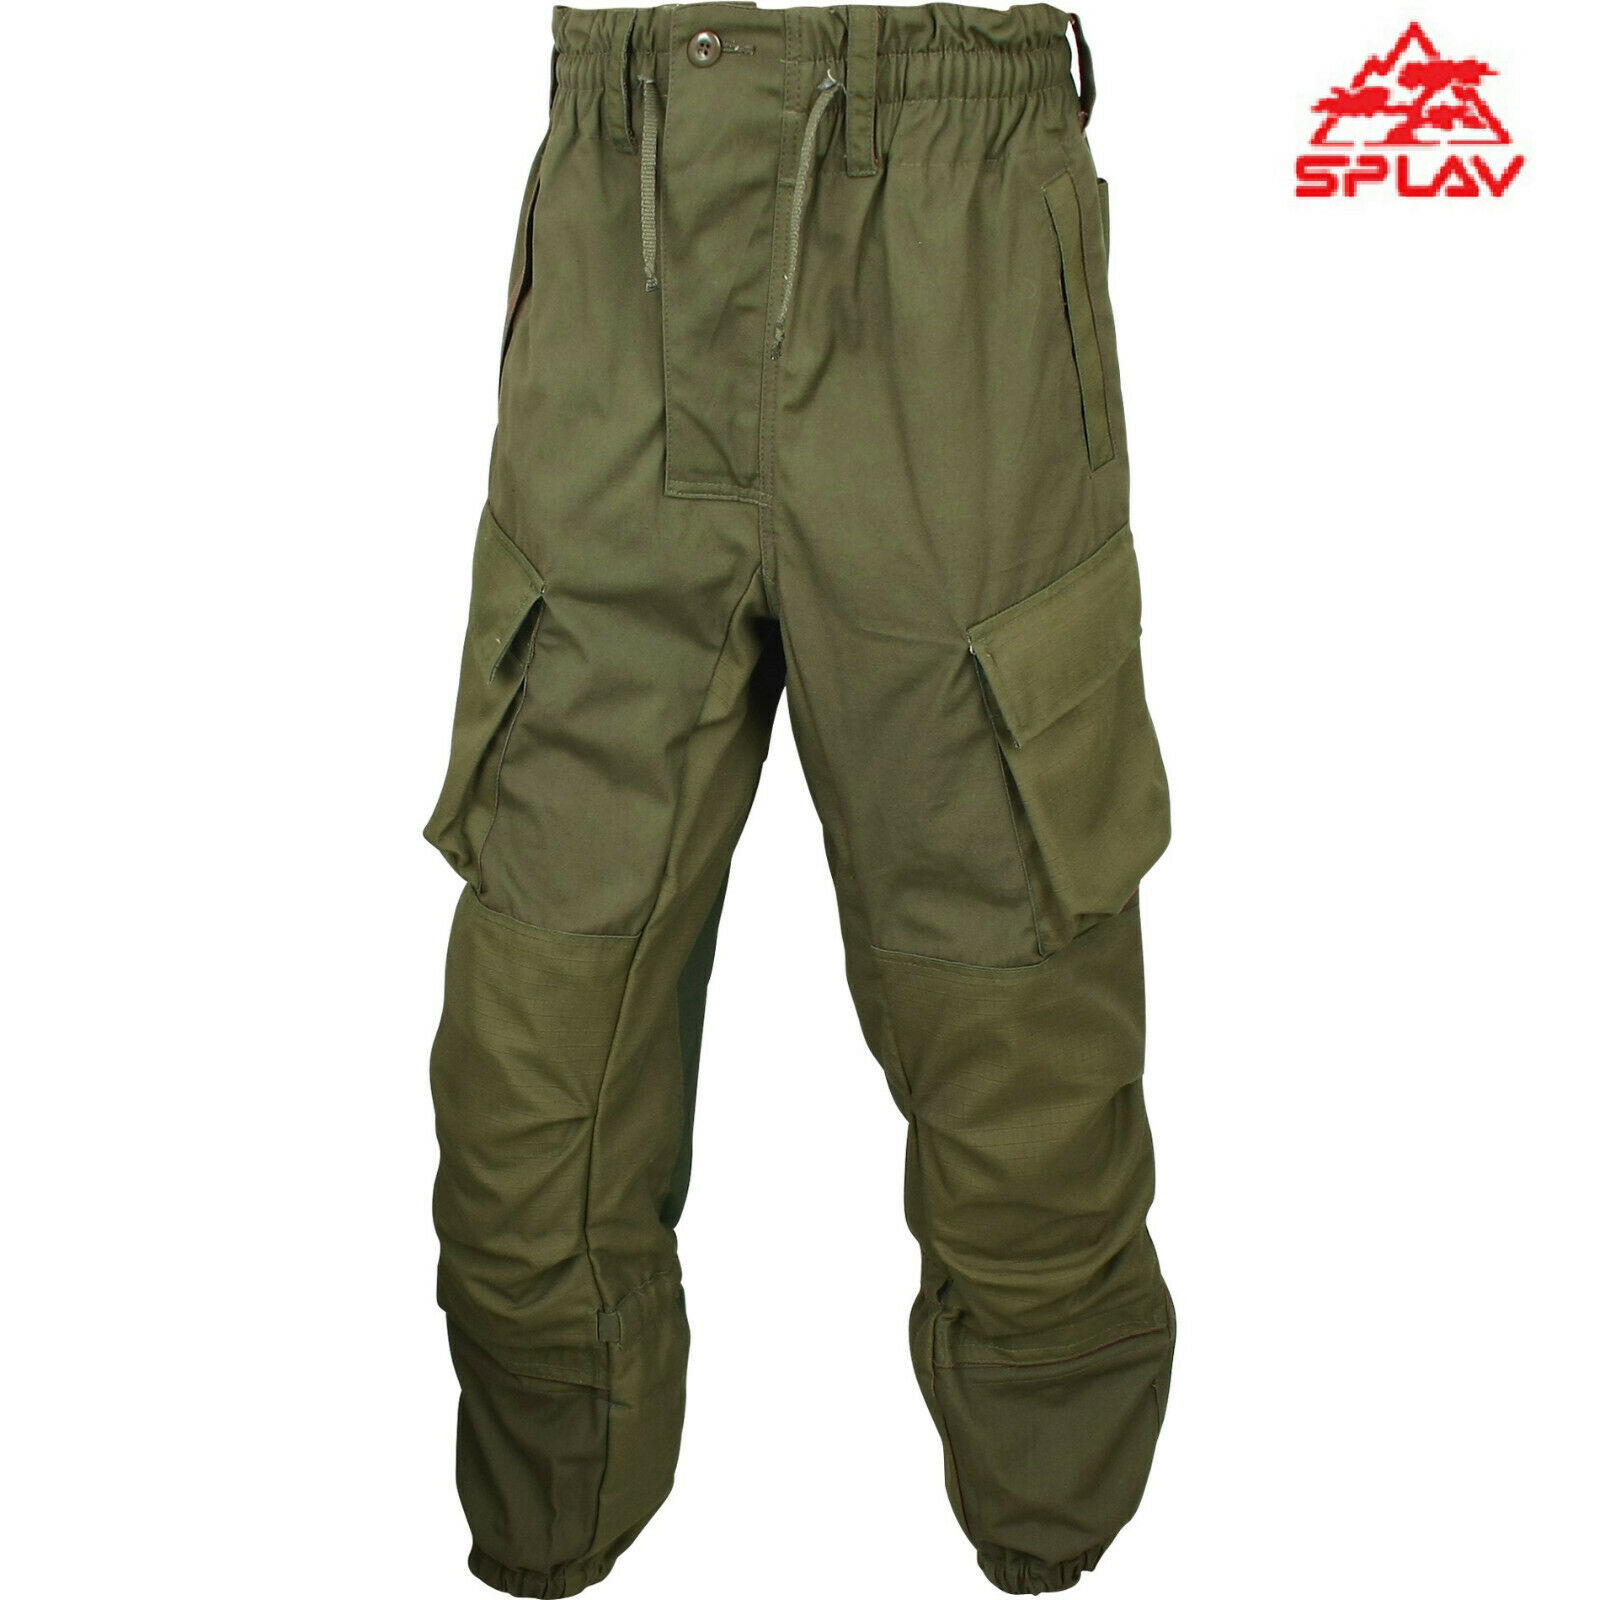 Russian Army Legendary Trousers Pants  Gorka-3 Green Mountain Infantry Divisions  hastened to see